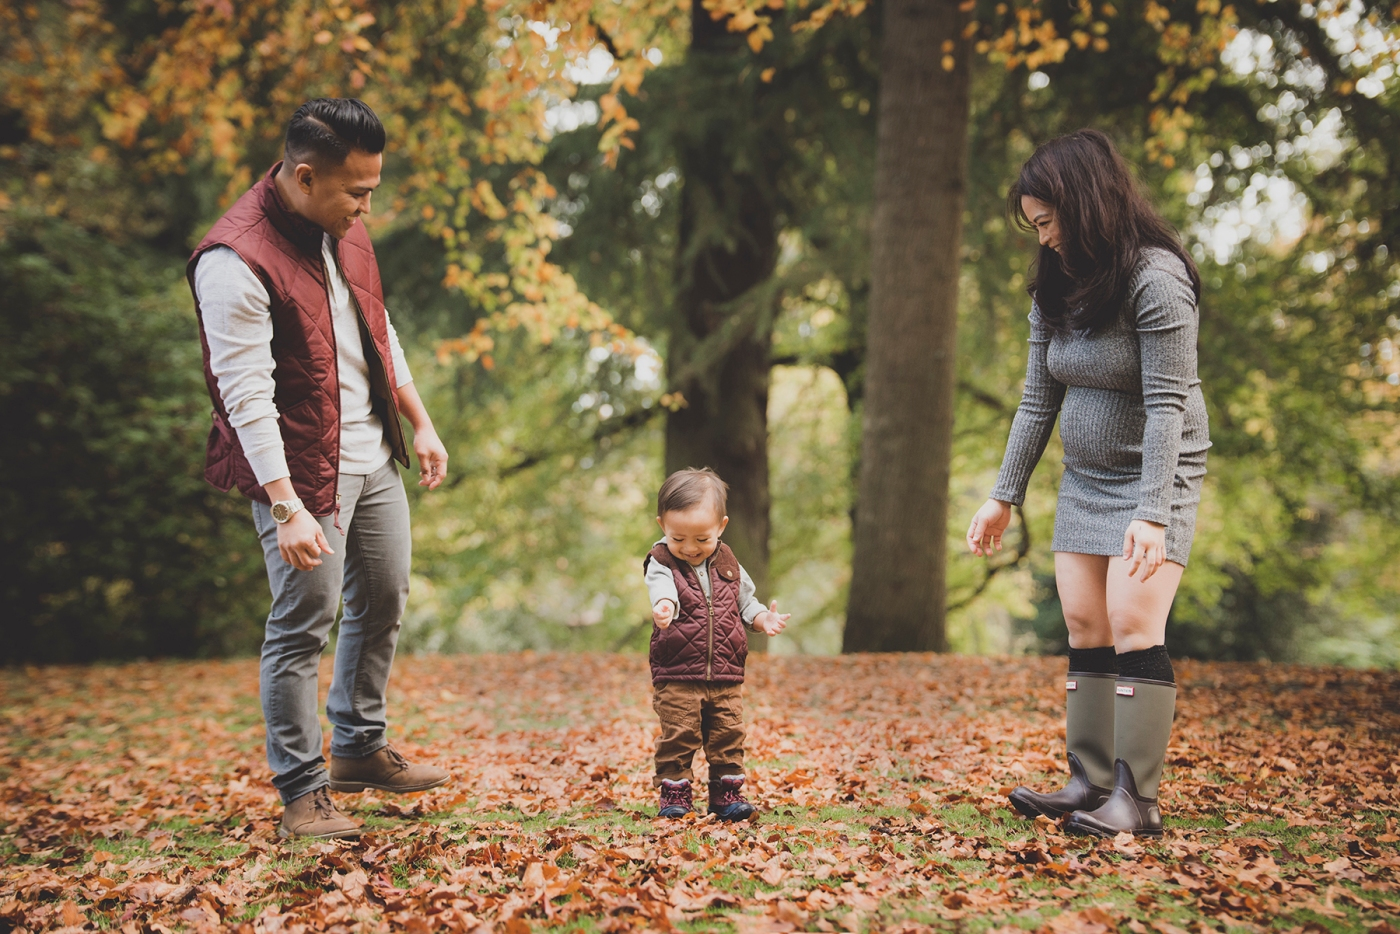 paula_p_maternity_the_royal_squirrel_seattle_family_photographer_2016_fall_dsc_7871